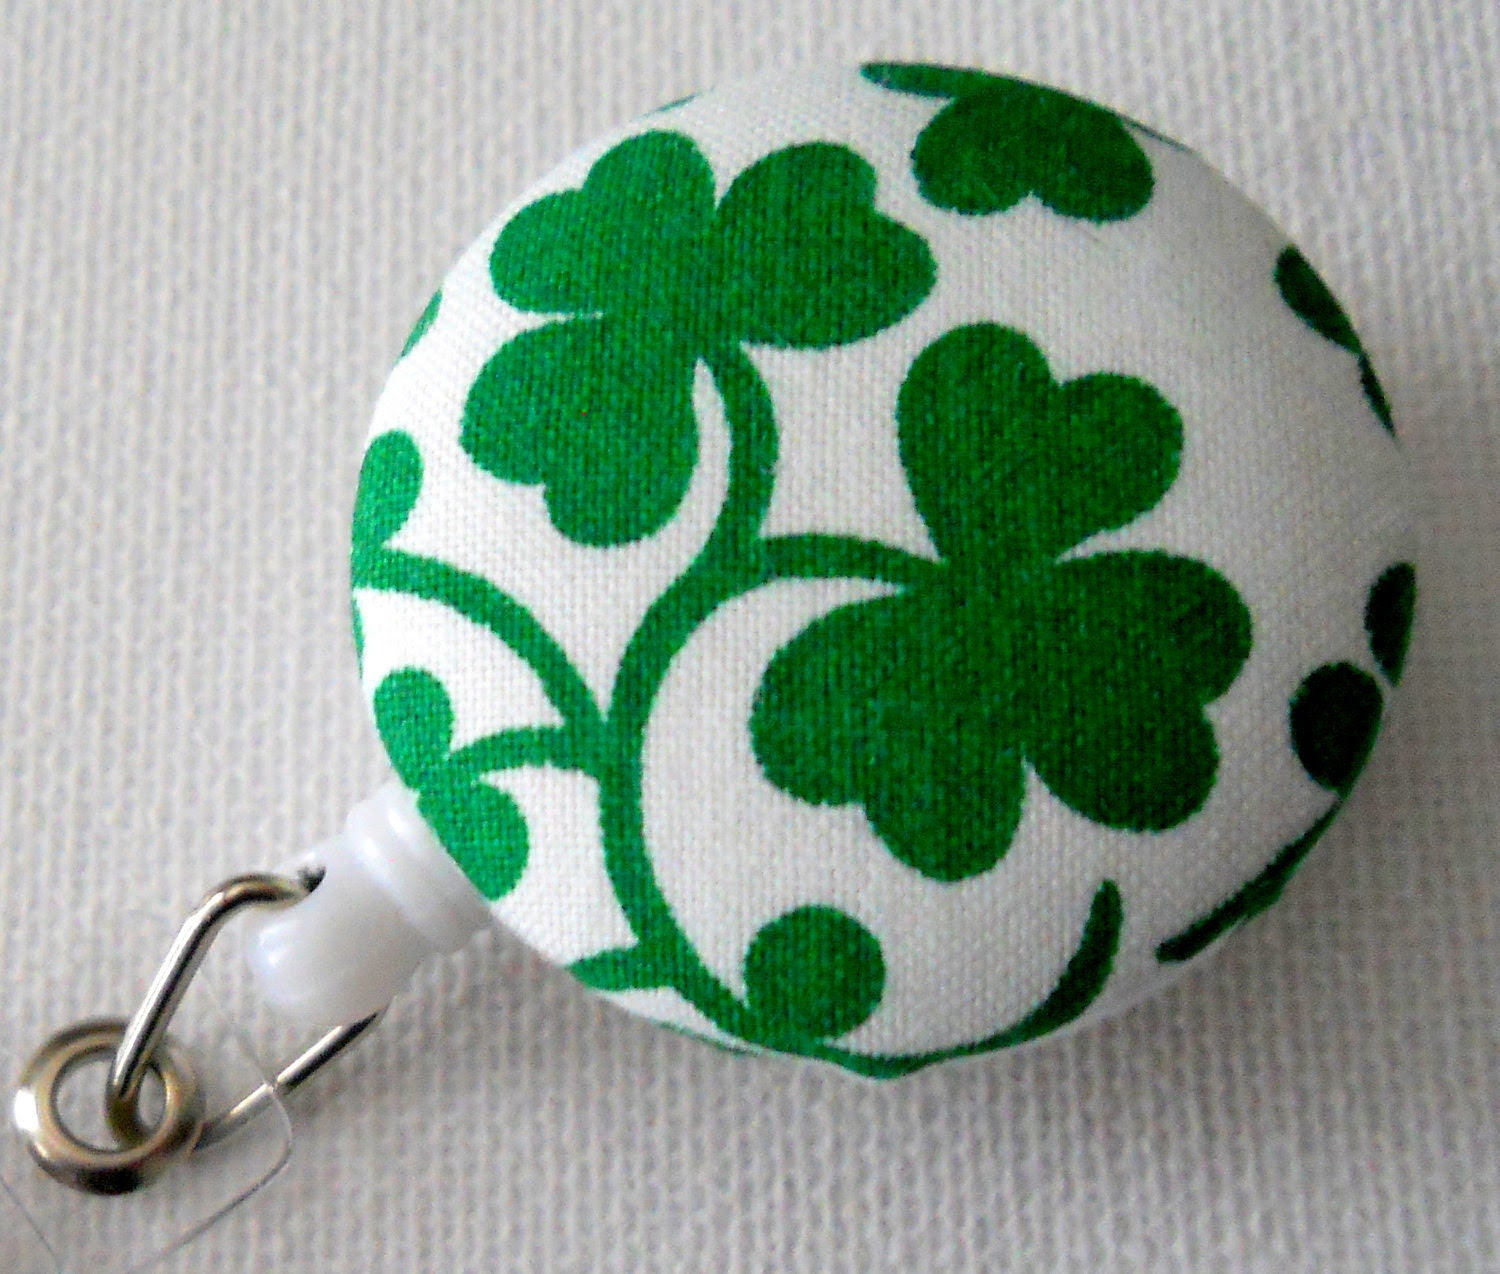 Retractable ID Badge Holder - ID Badge Reel Holder for St. Patrick's Day Clover Shamrock Kelly Green (Retractable)